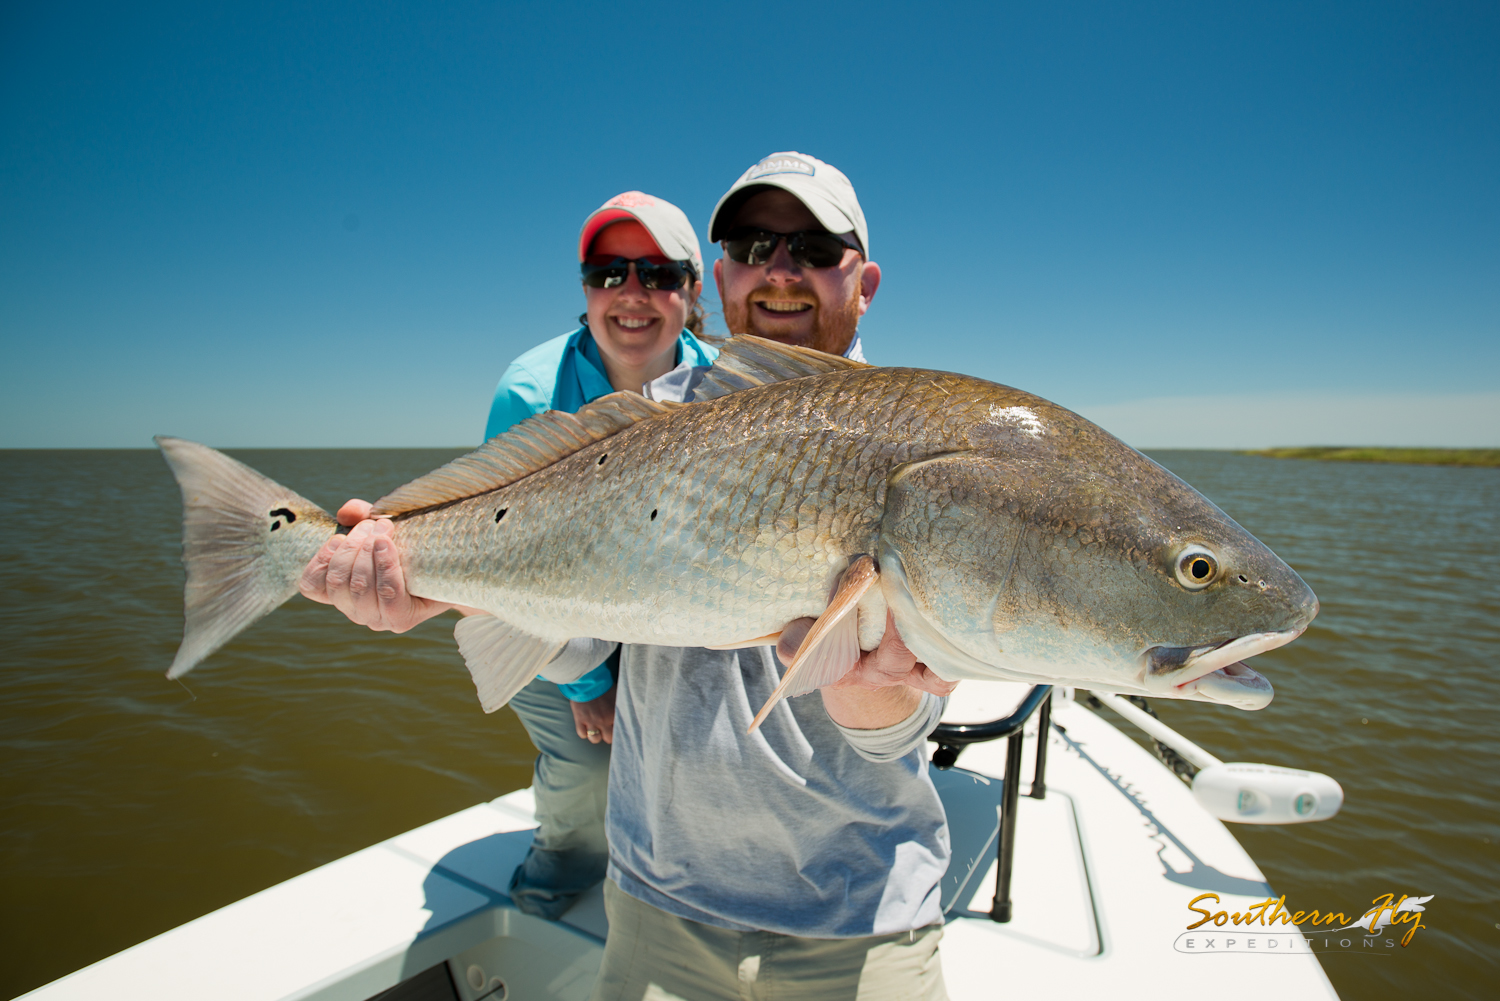 Couple Weekend Fly Fishing Trip New Orleans